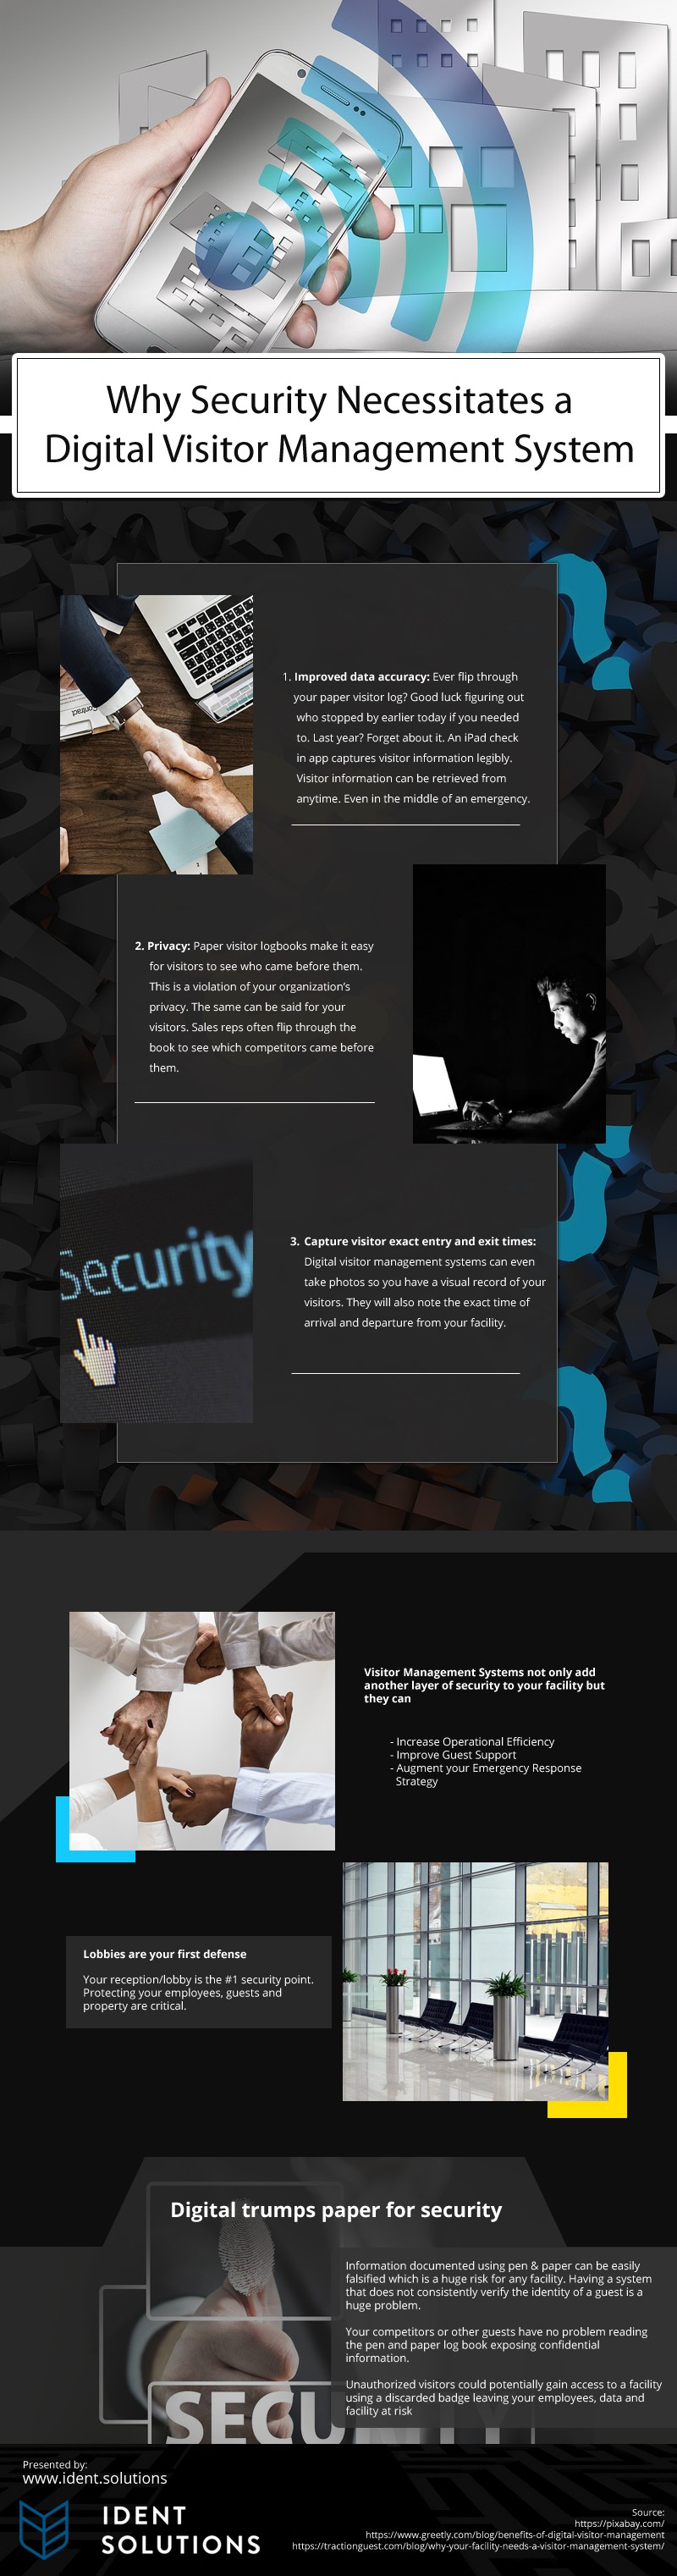 Why-Security's-Necessitates-a-Digital-Visitor-Management-System Infographic